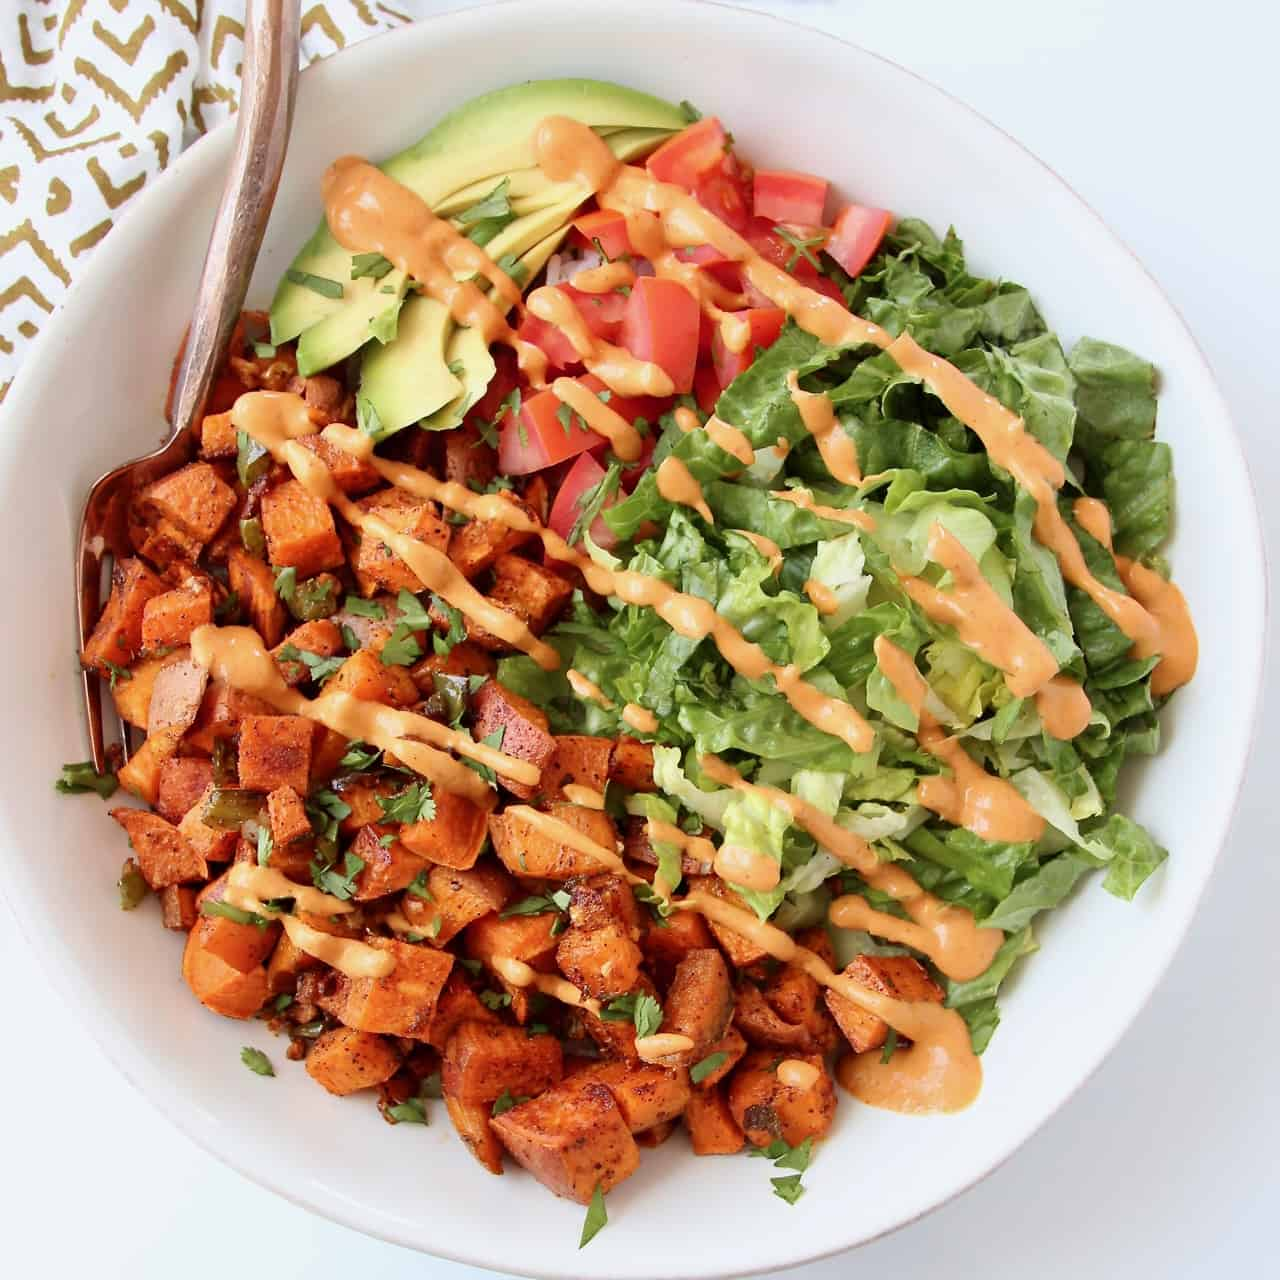 Overhead image of roasted sweet potatoes in bowl drizzled with creamy chipotle sauce